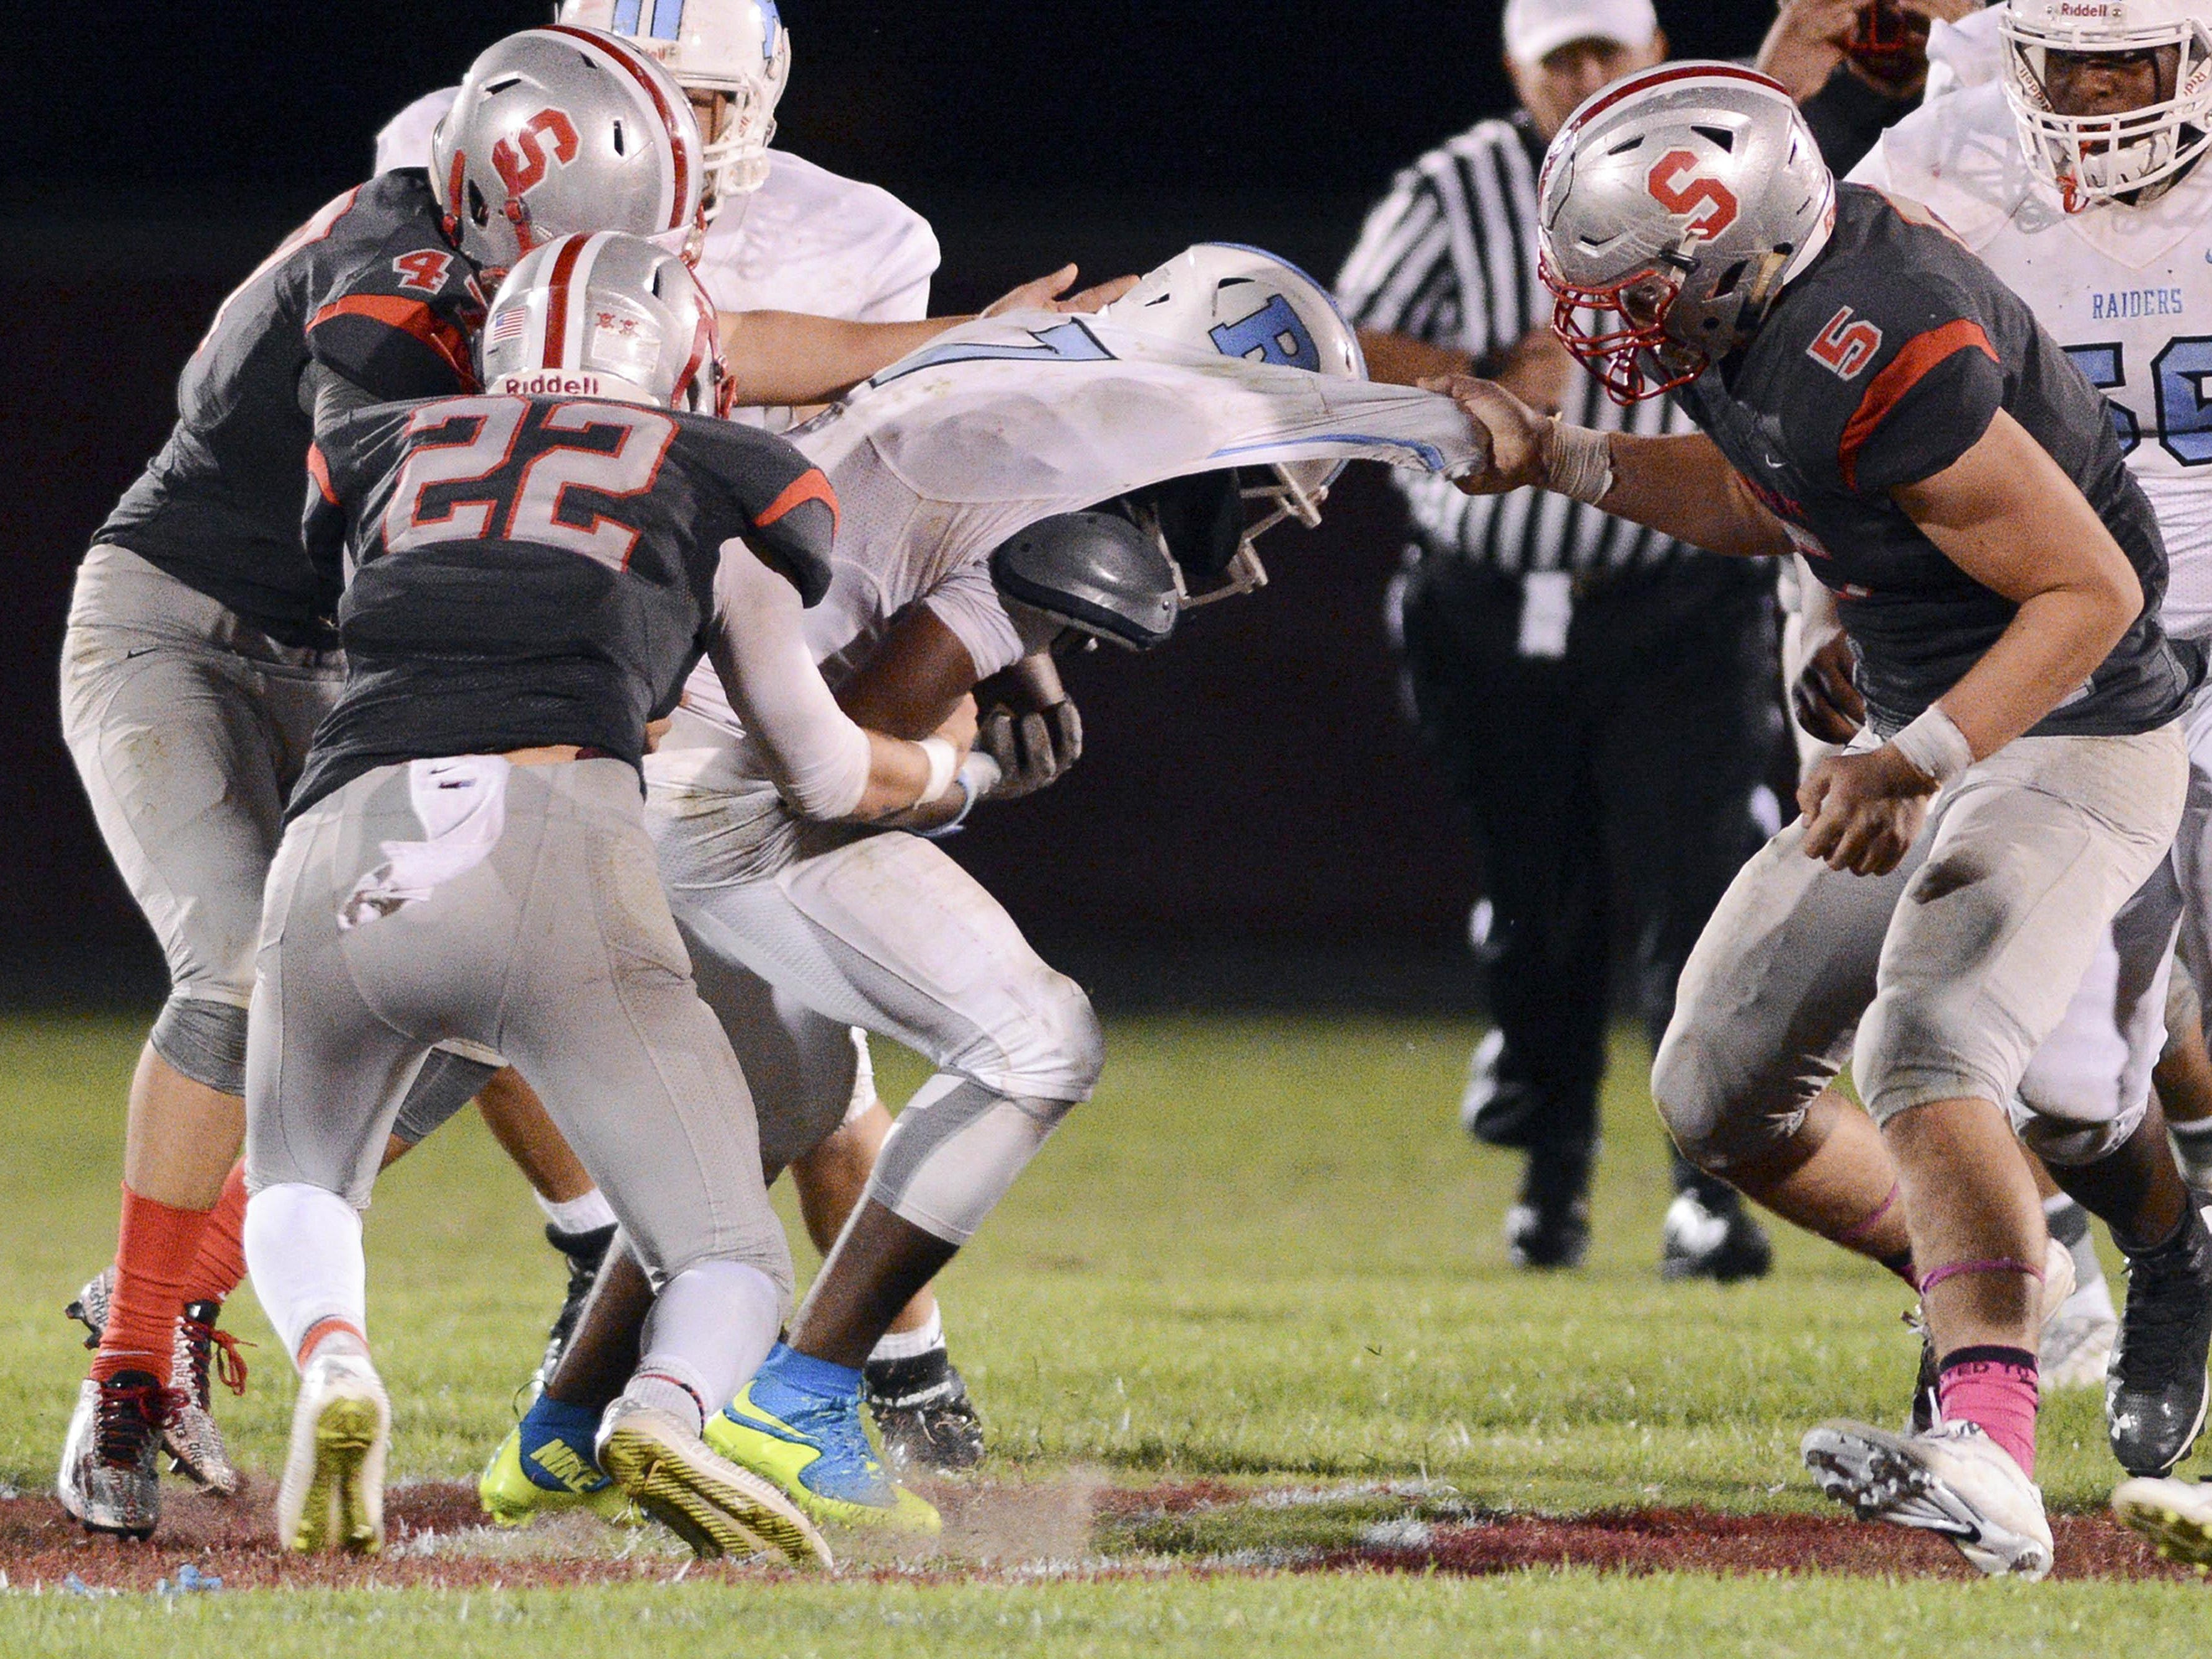 Jalen Mitchell of Rockledge is taken down by Satellite players Andrew Abendroth (47) David Eaton (22) and Kyle Bassagnani (5) during last week's game in Satellite Beach.